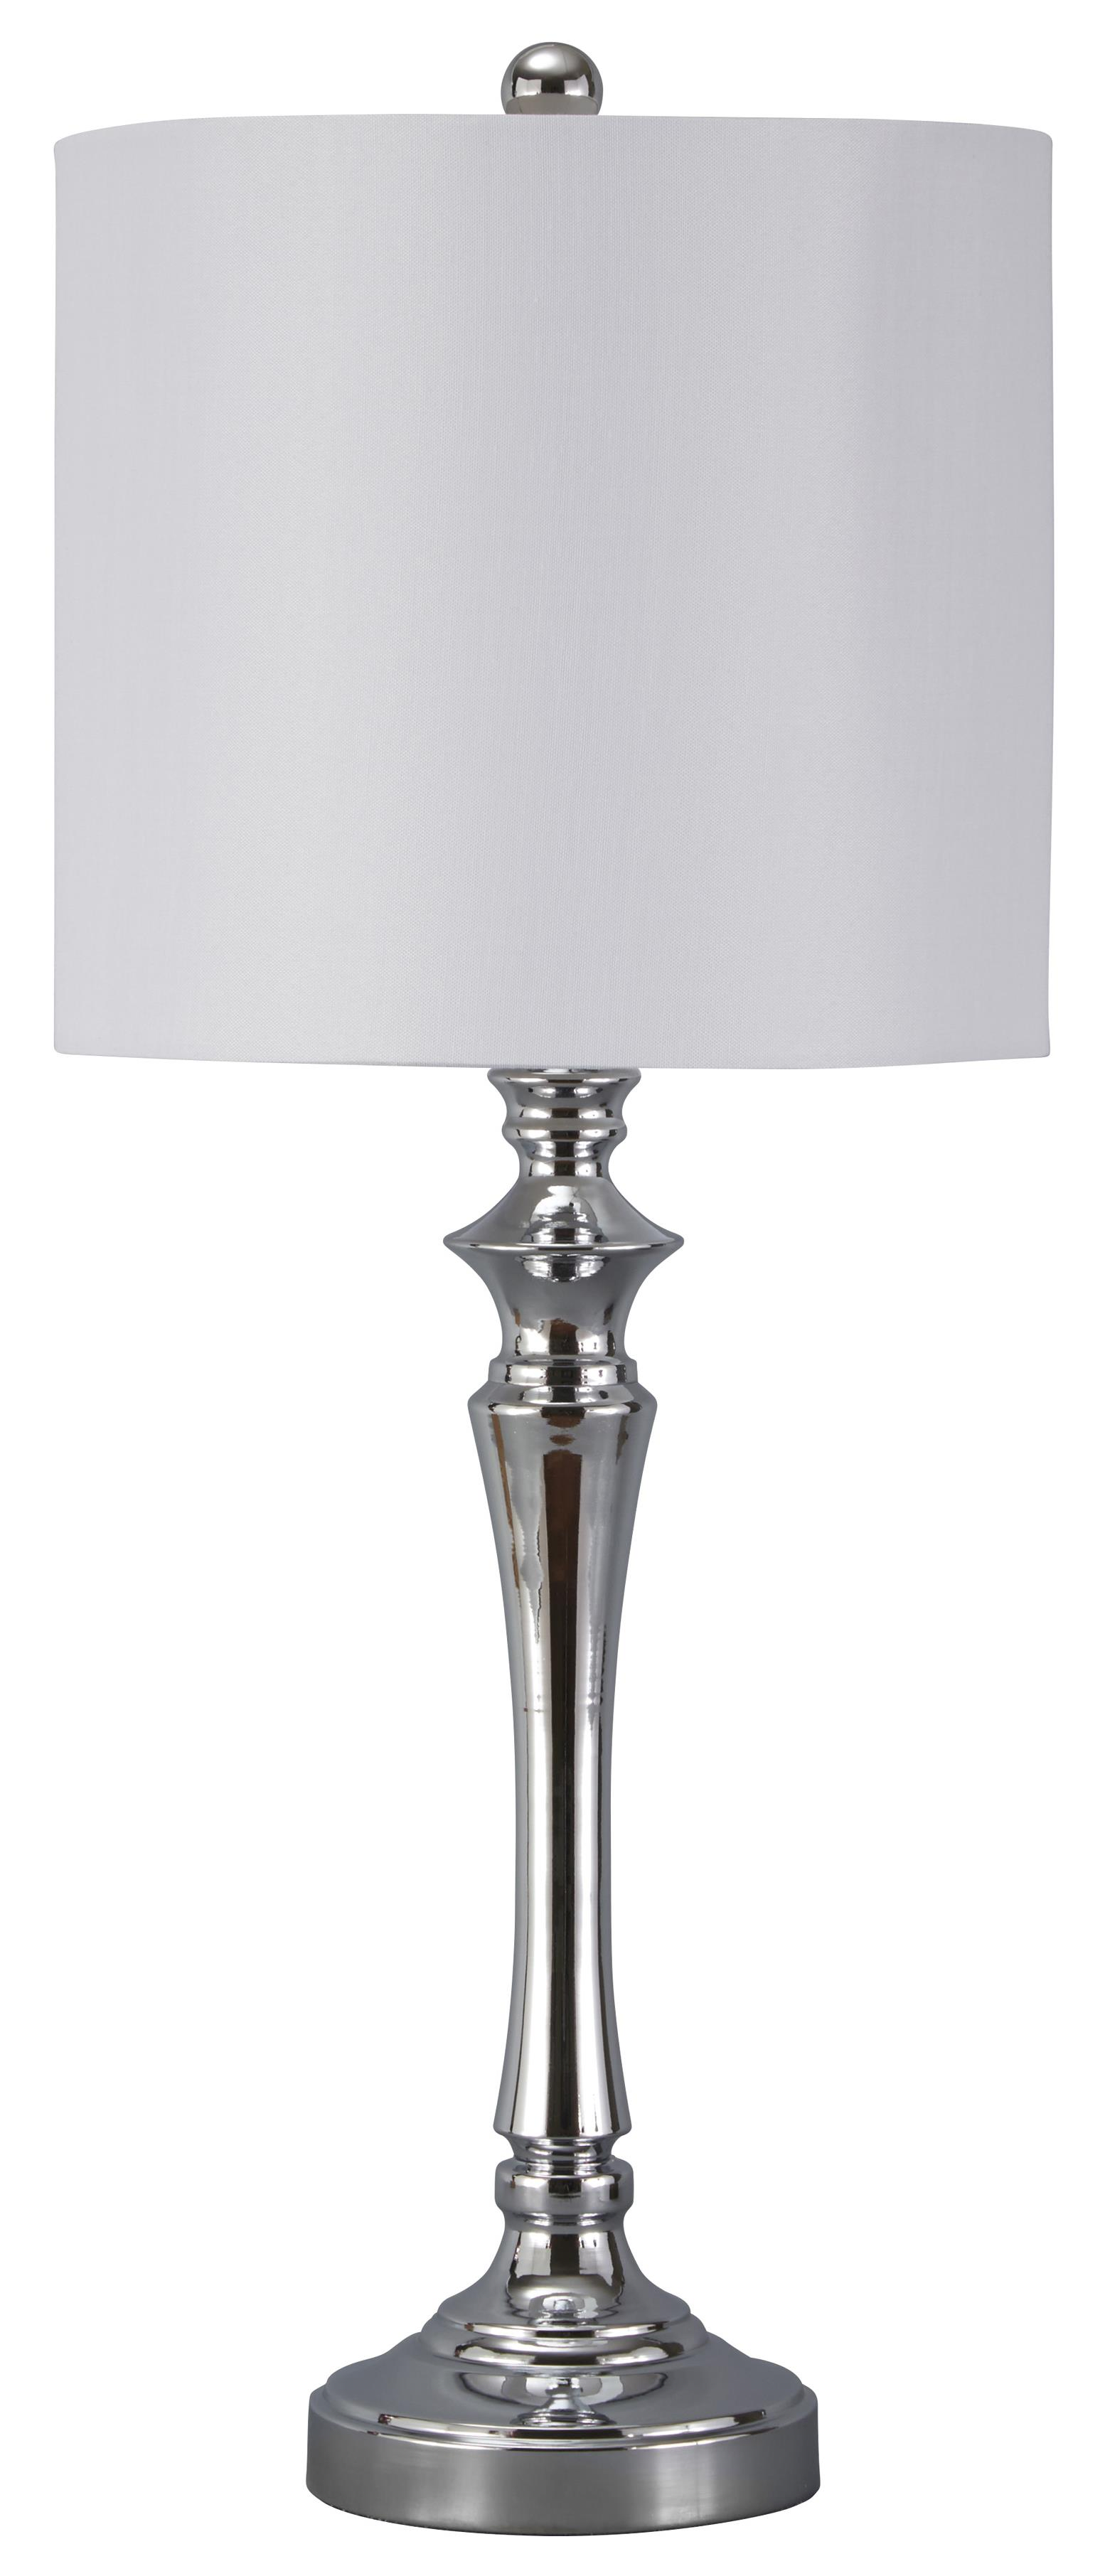 Set of 2 Taji Metal Table Lamps